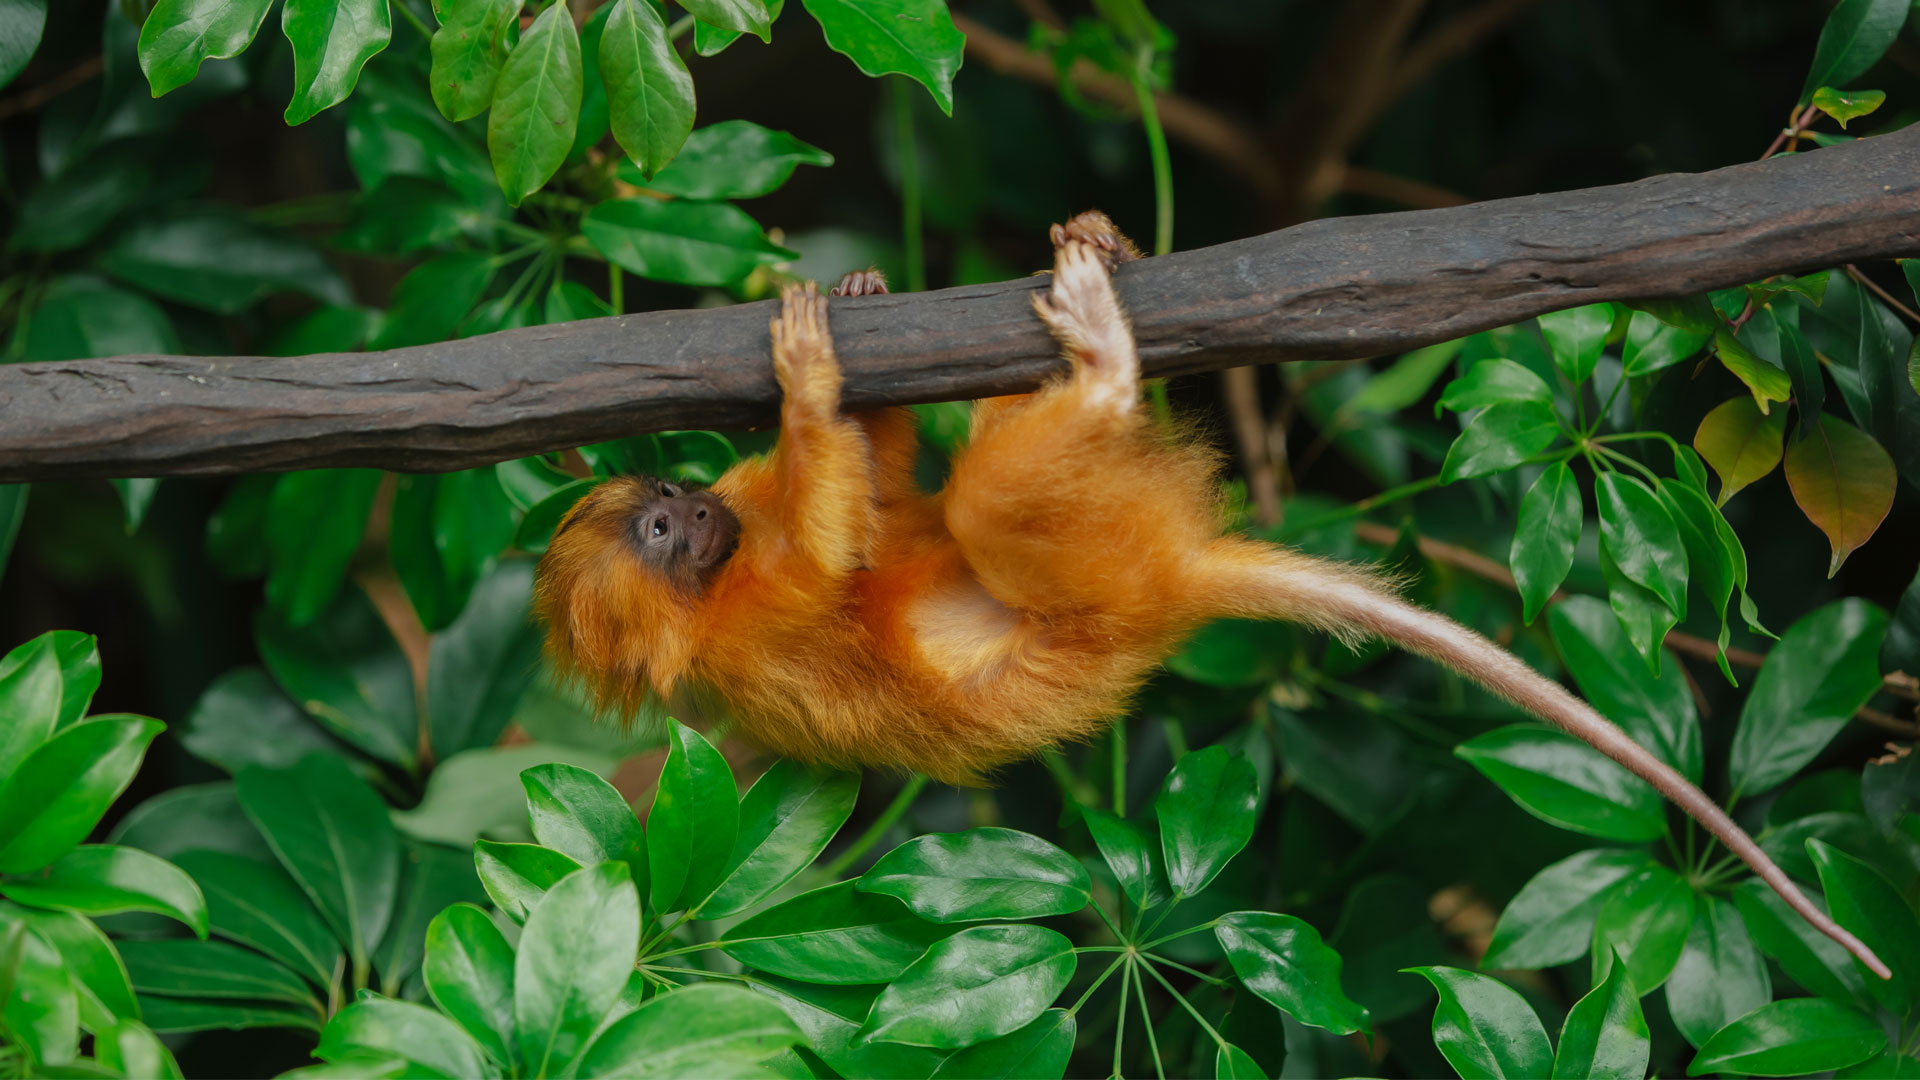 https://rfacdn.nz/zoo/assets/media/golden-lion-tamarin-twins-gallery-19.jpg